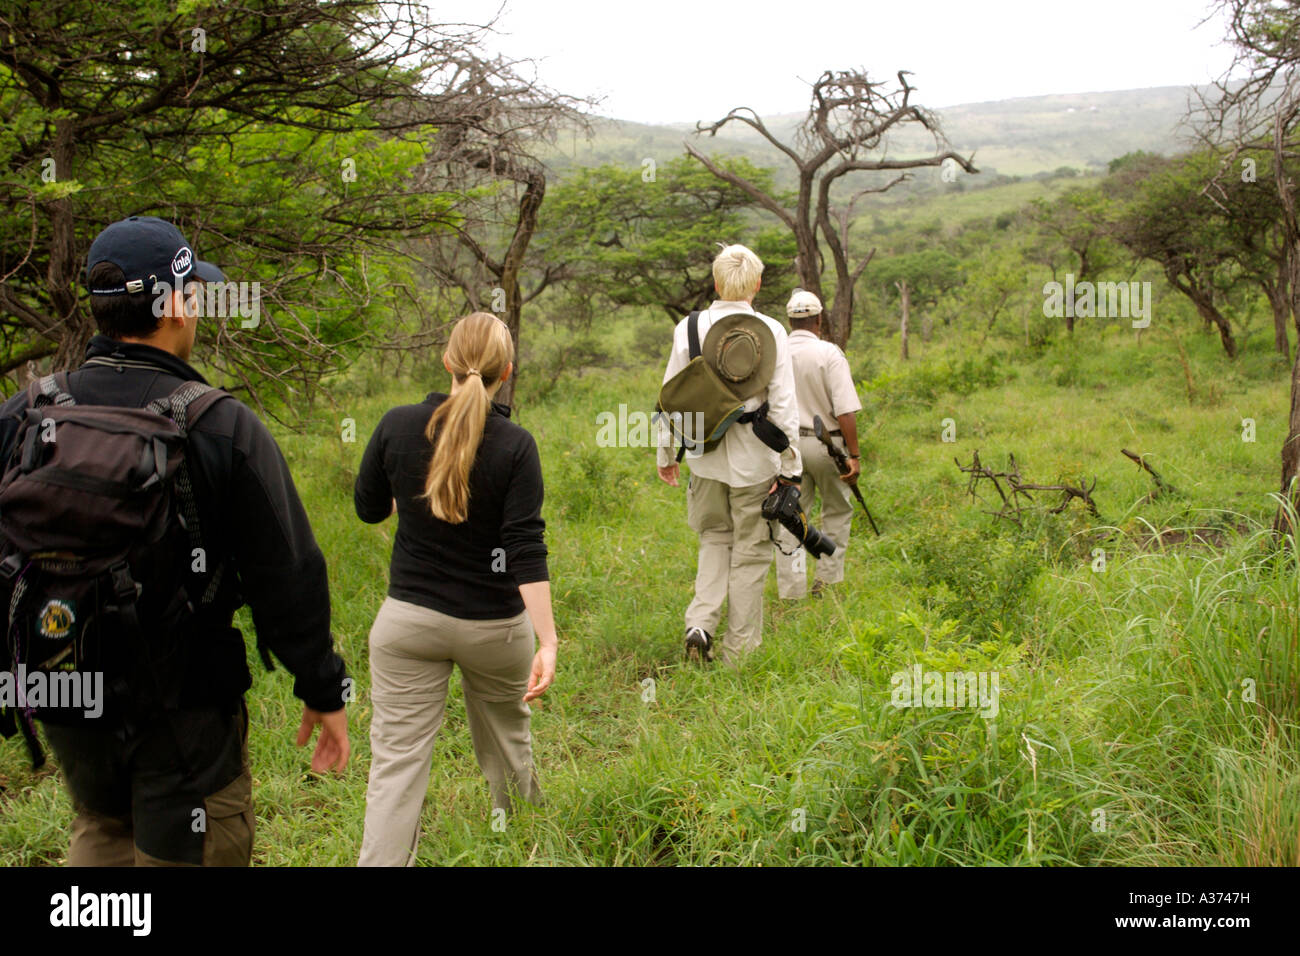 Elliot Qwabe, a bush guide since 1976, leading tourists on a game walk in the Umfolozi-Hluhluwe National Park in - Stock Image